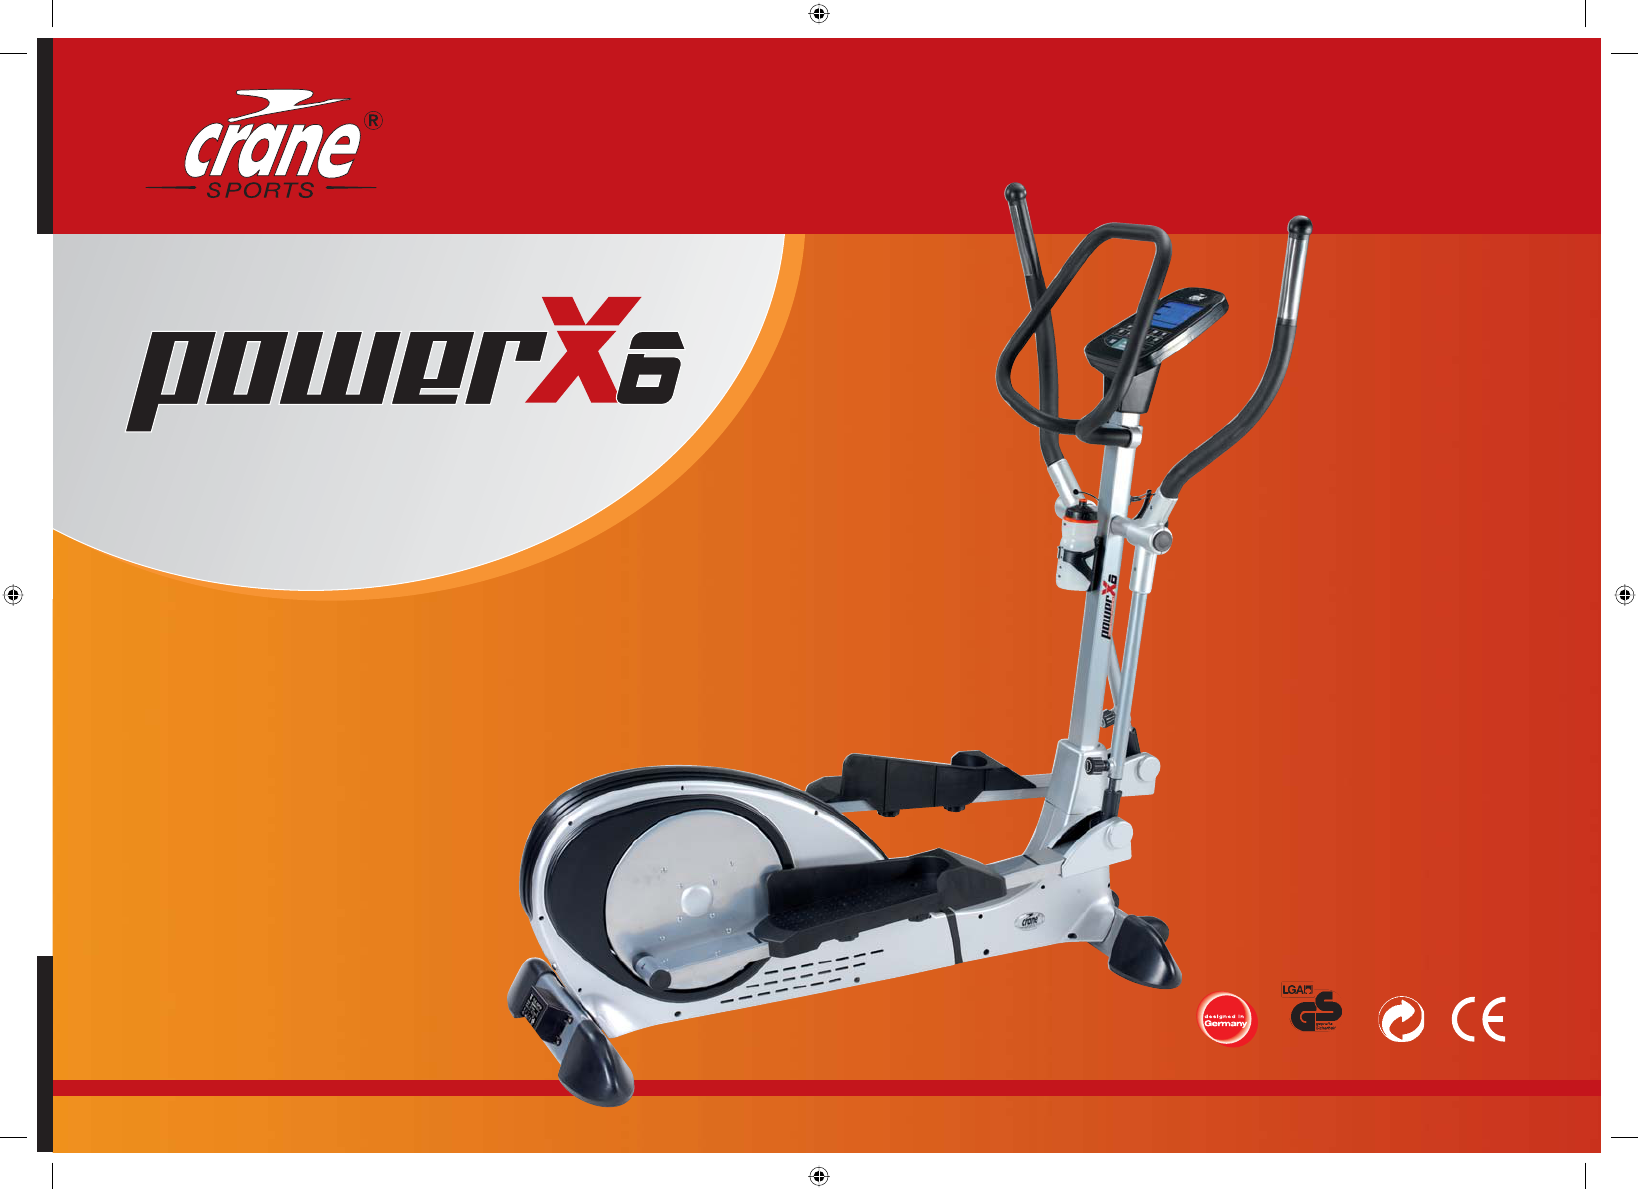 Crane Sports Cross 7 Ergometer Manual Transmission - safetypoks